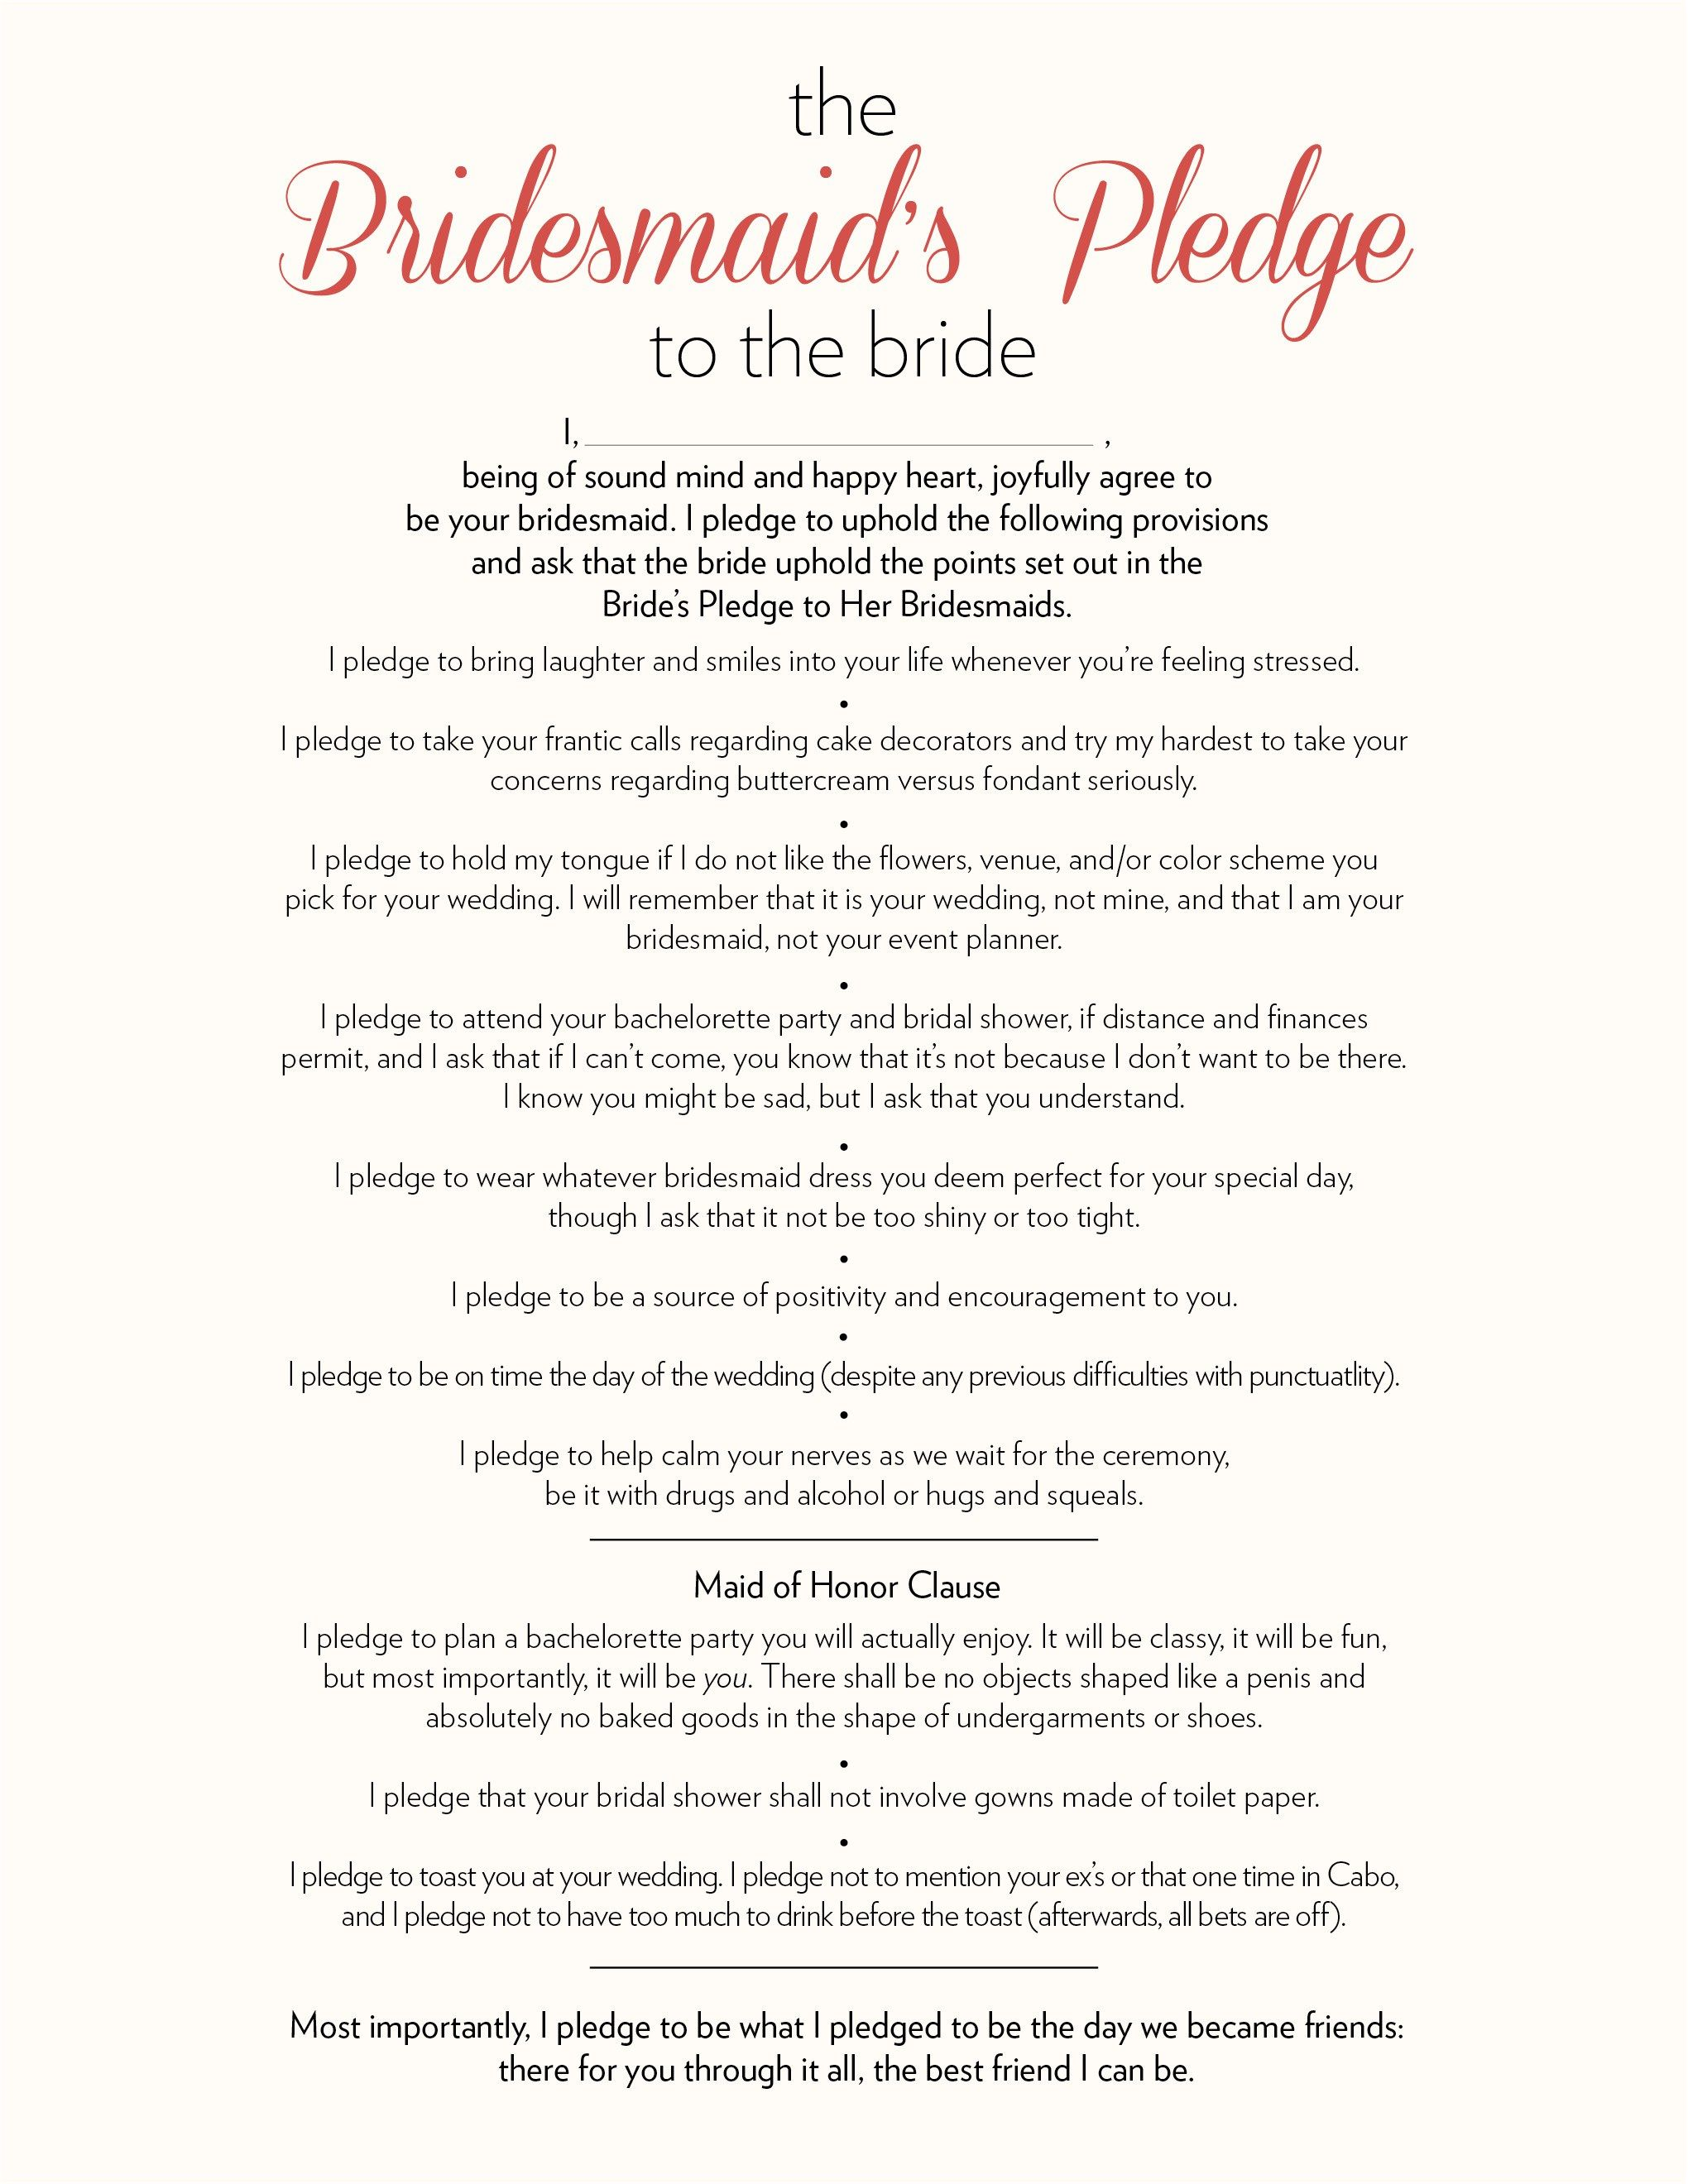 bridesmaids pledge to the bride more wedding speeches bridesmaid